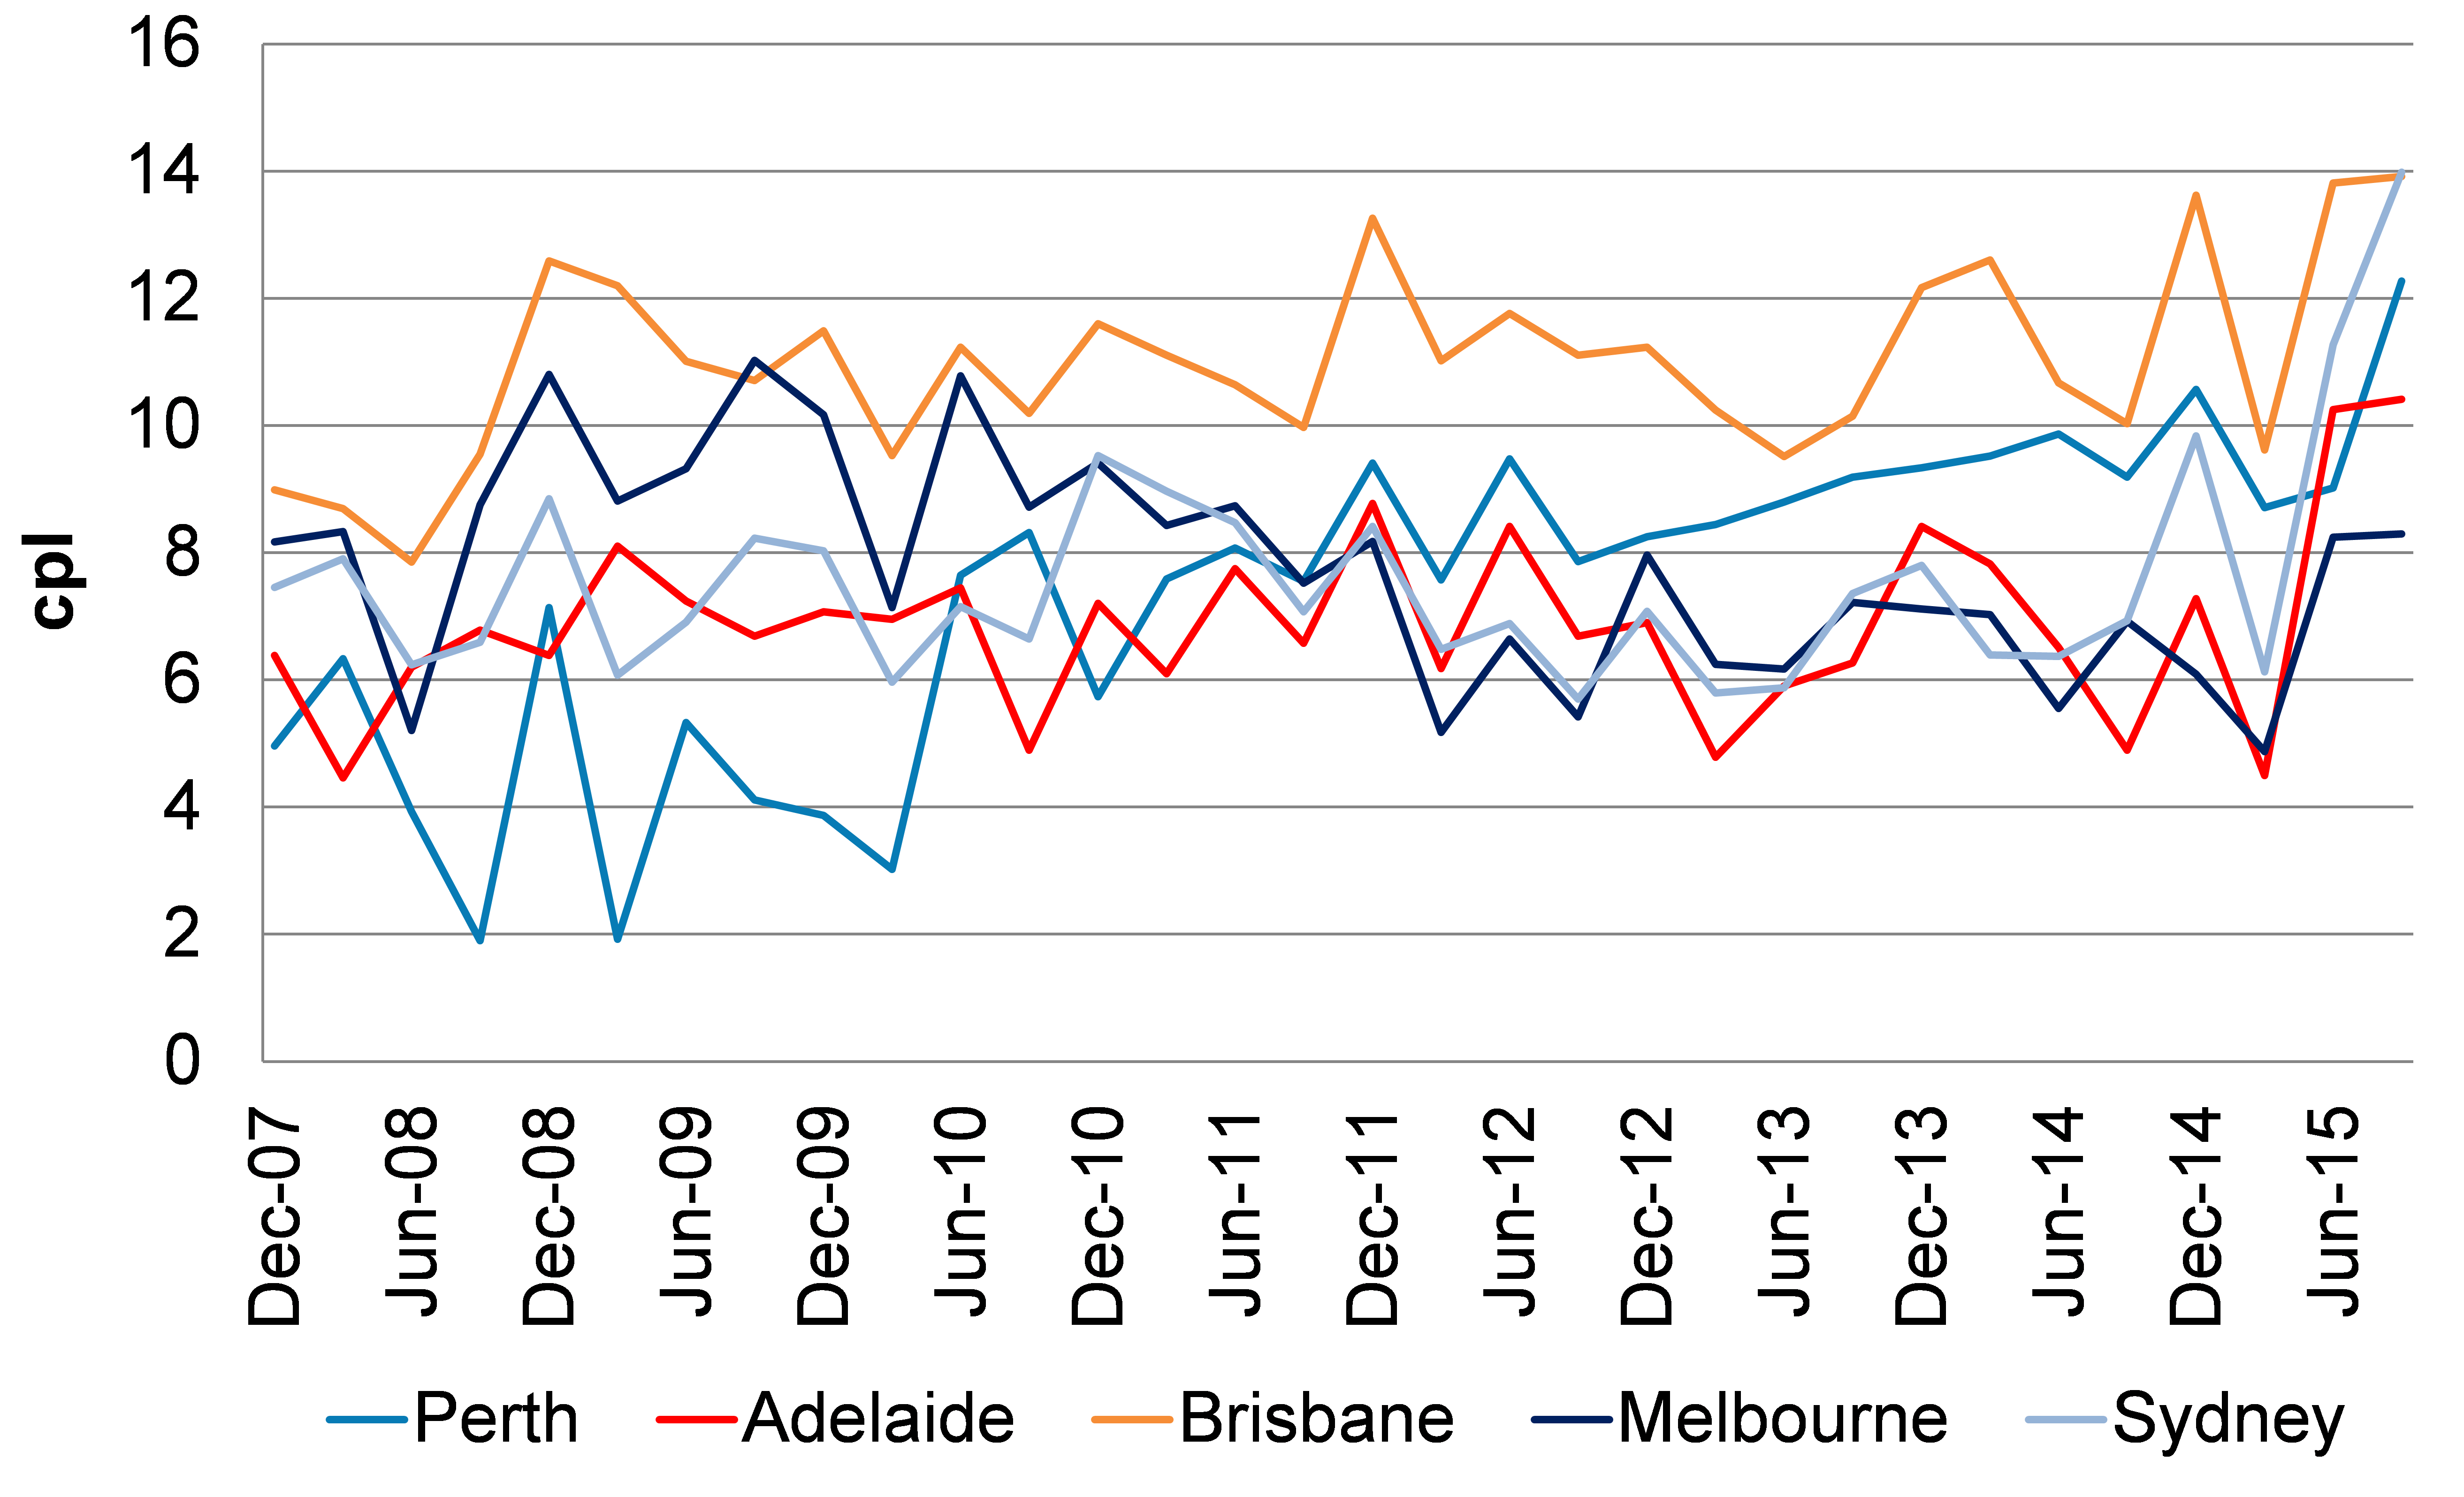 Line chart comparing Quarterly GIRDS of the 5 largest cities from December Quarter 2007 until September Quarter 2015